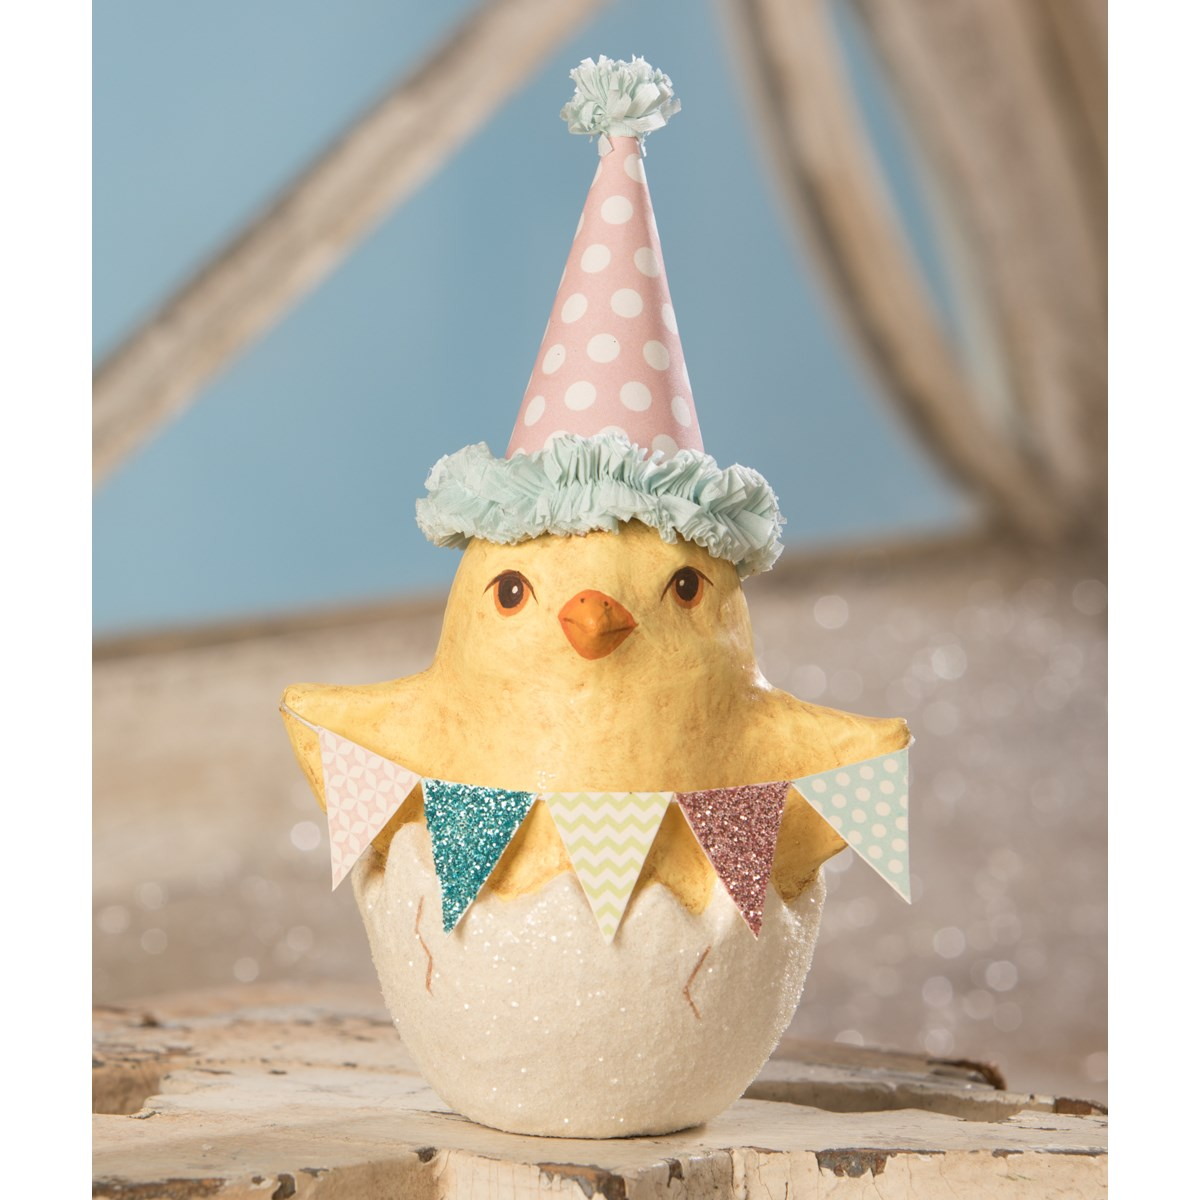 Spring Party Chick in Egg Small Paper Mache